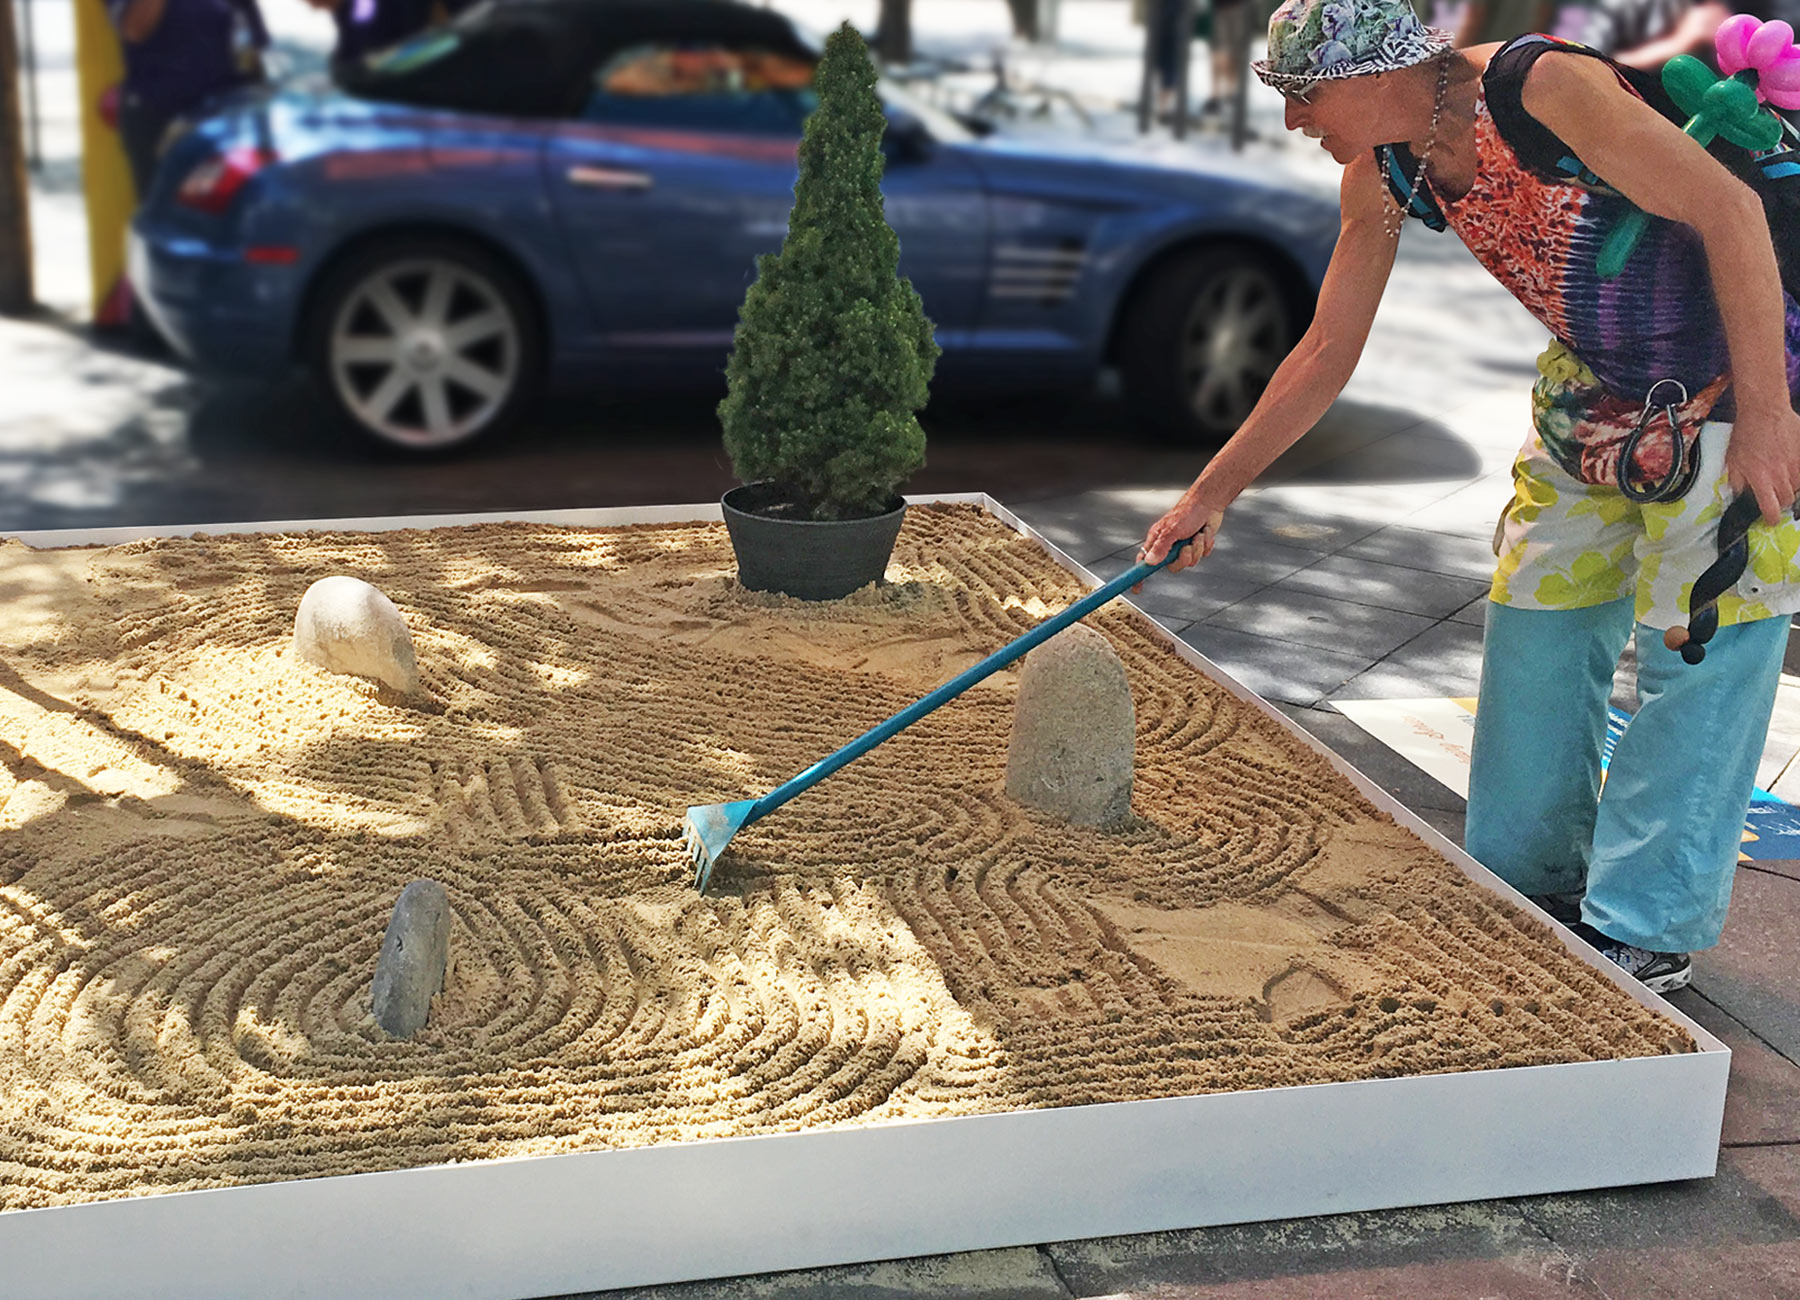 On a warm summer day, a man is using a custom-designed rake to make calming line in sand inside a custom-build zen garden on the 16th street mall in Denver, Colorado.